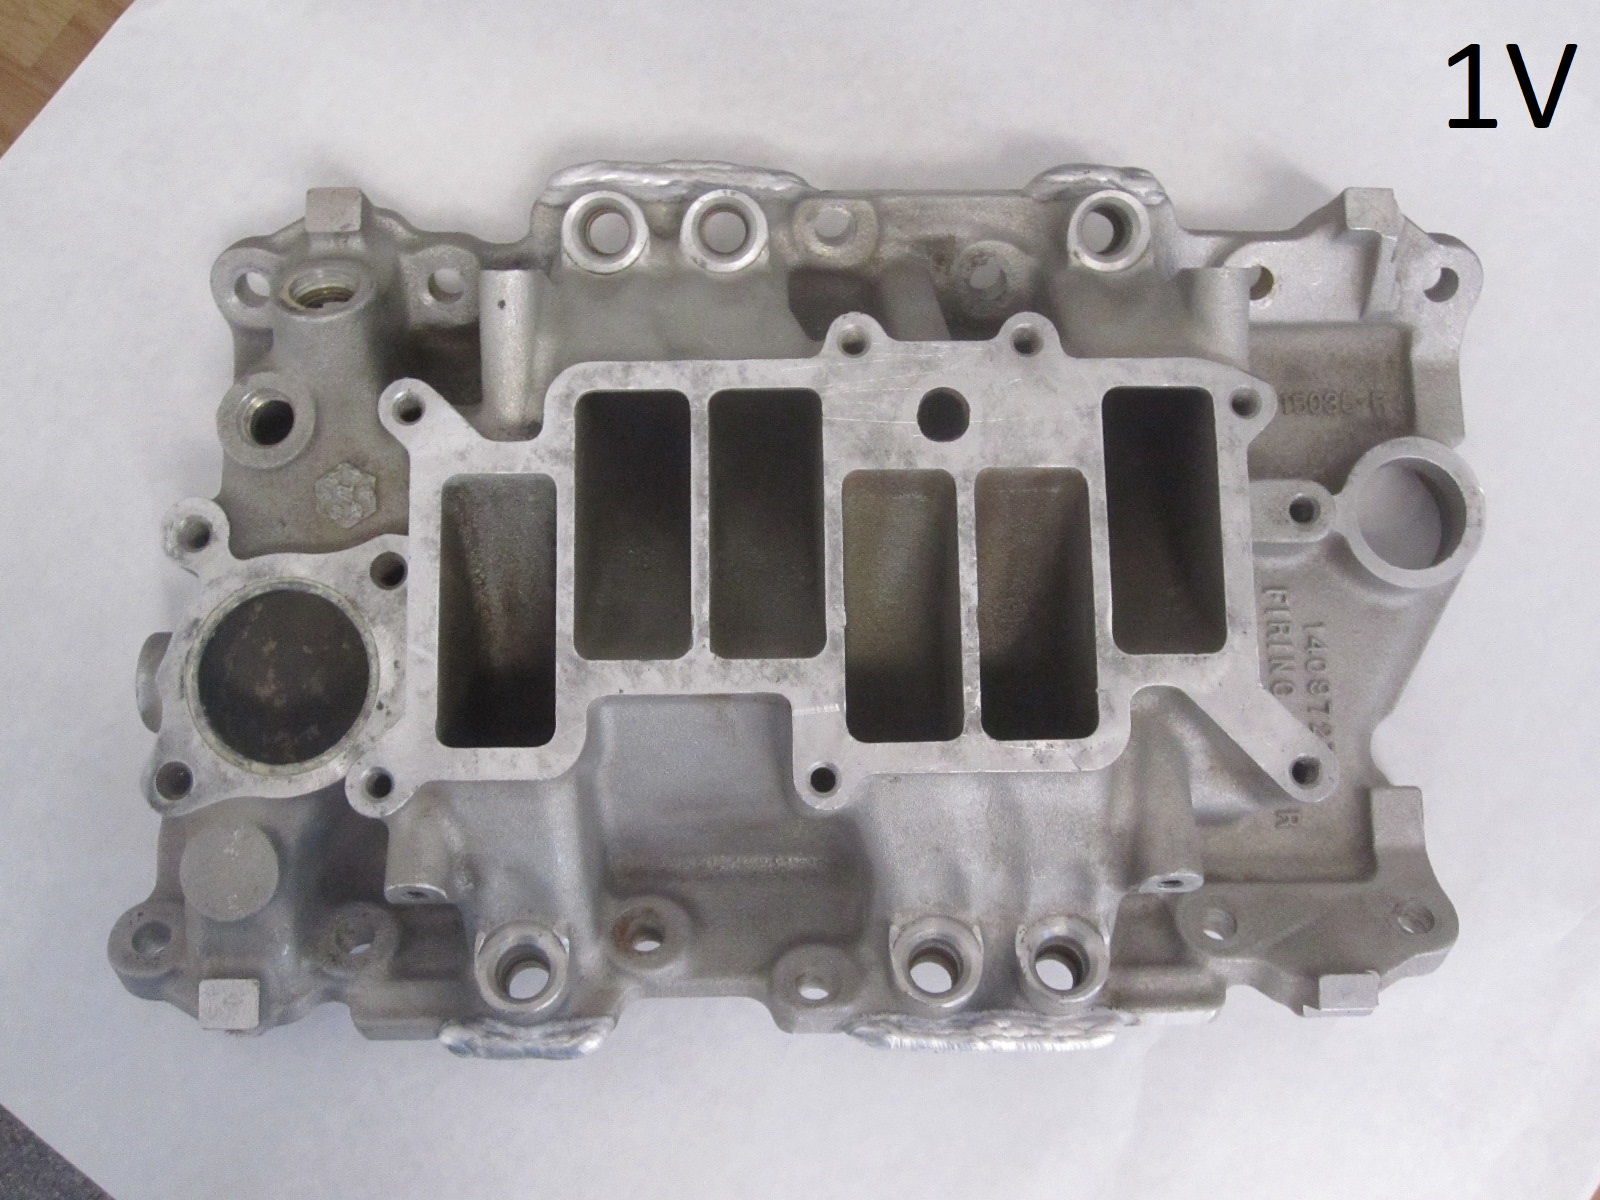 It S An Intake Manifold For A Gmc Syclone Or Typhoon Rare Trucks